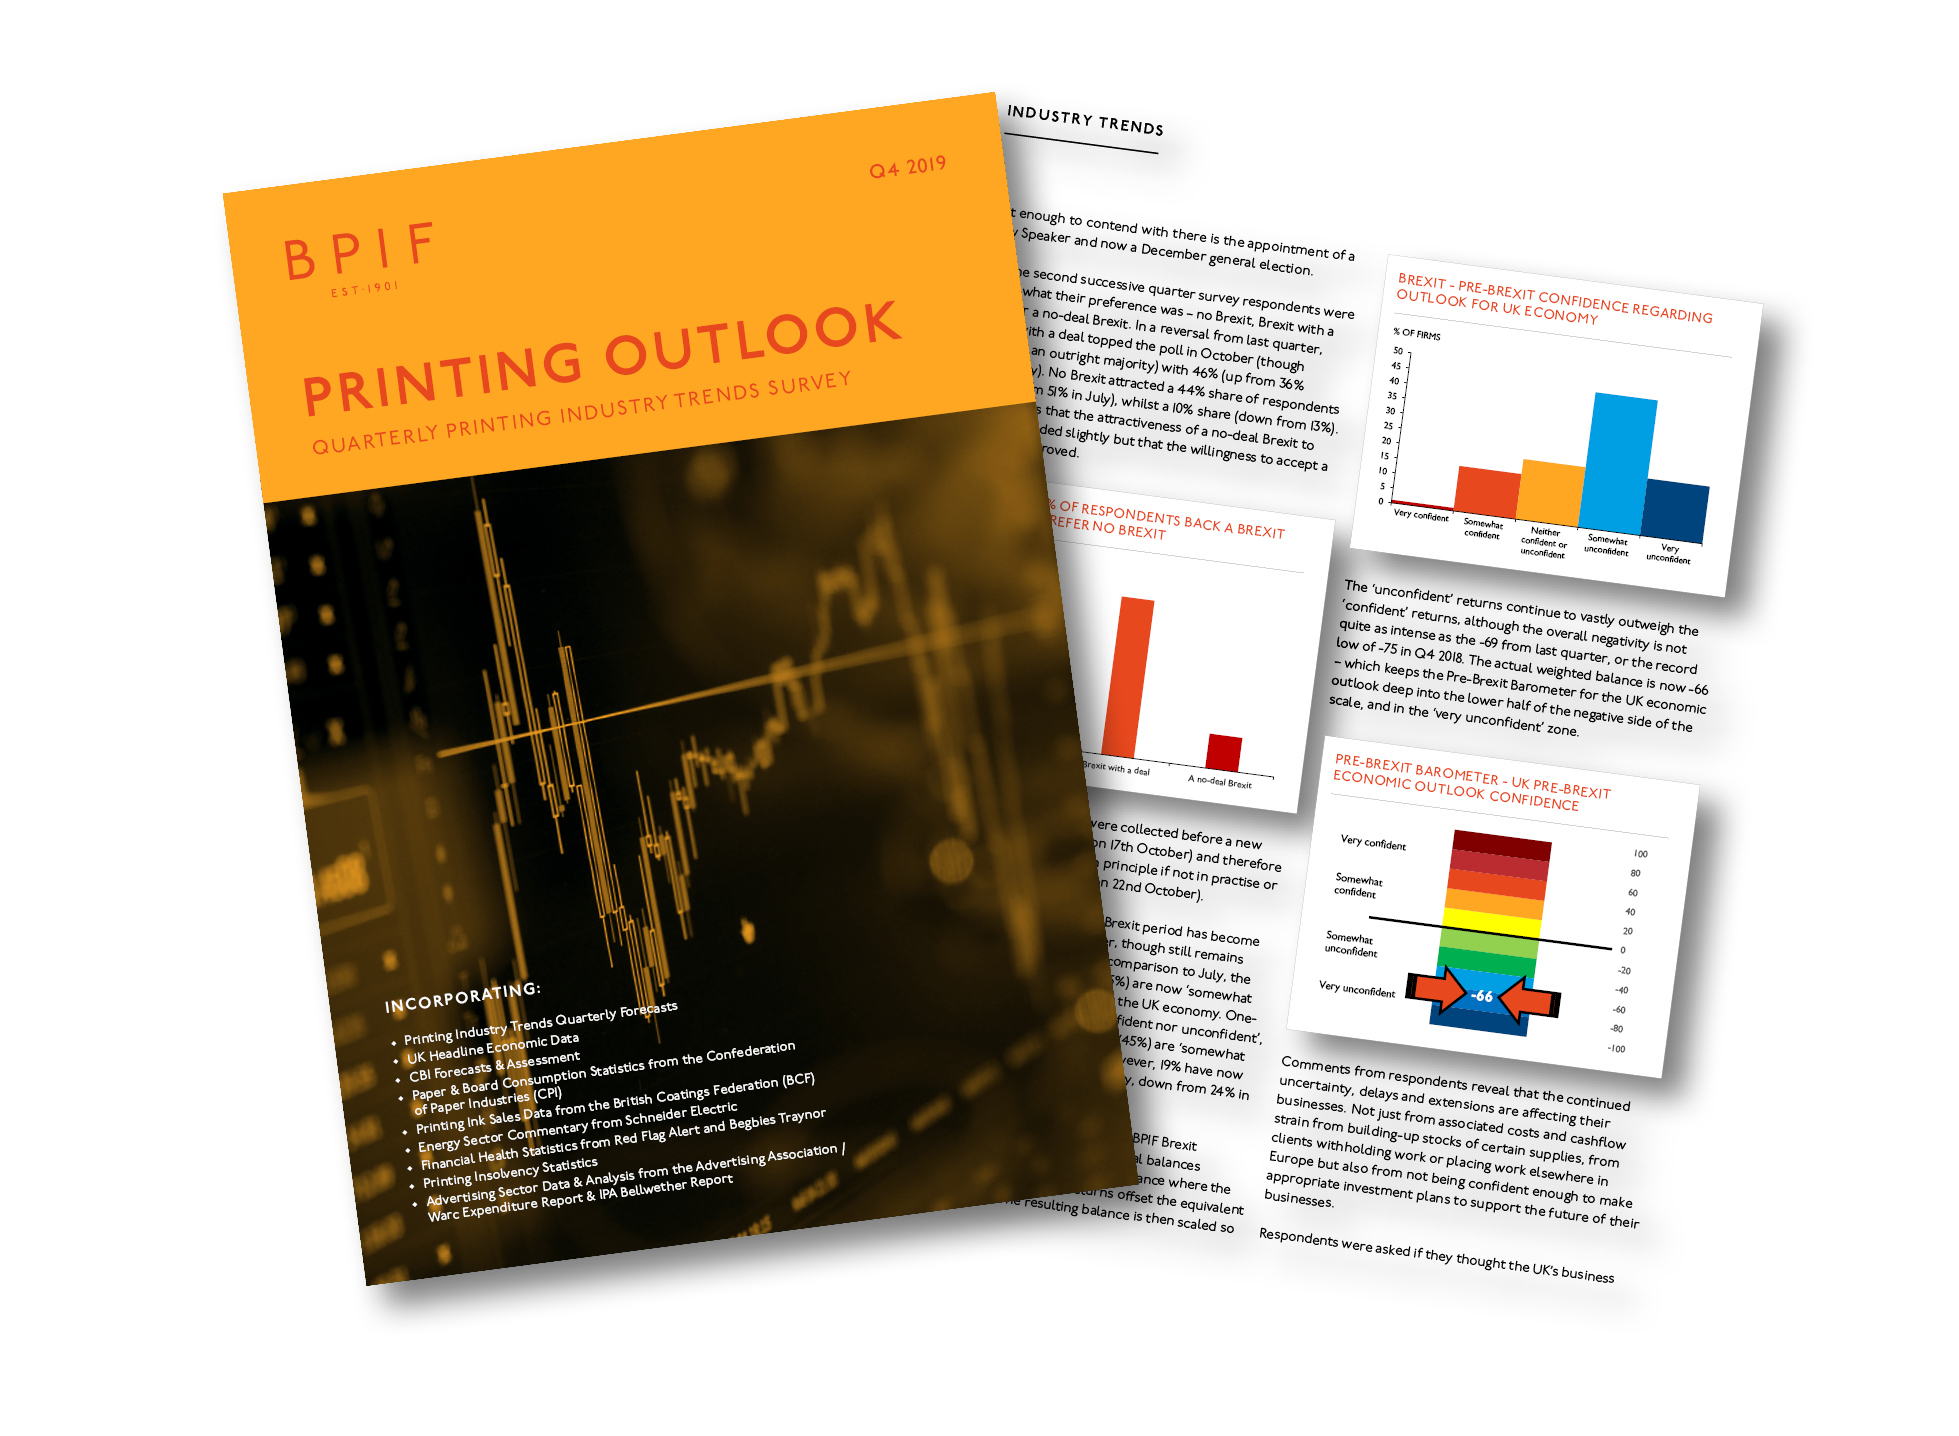 Q4 disappoints as orders and output only marginally outperform restrained forecast